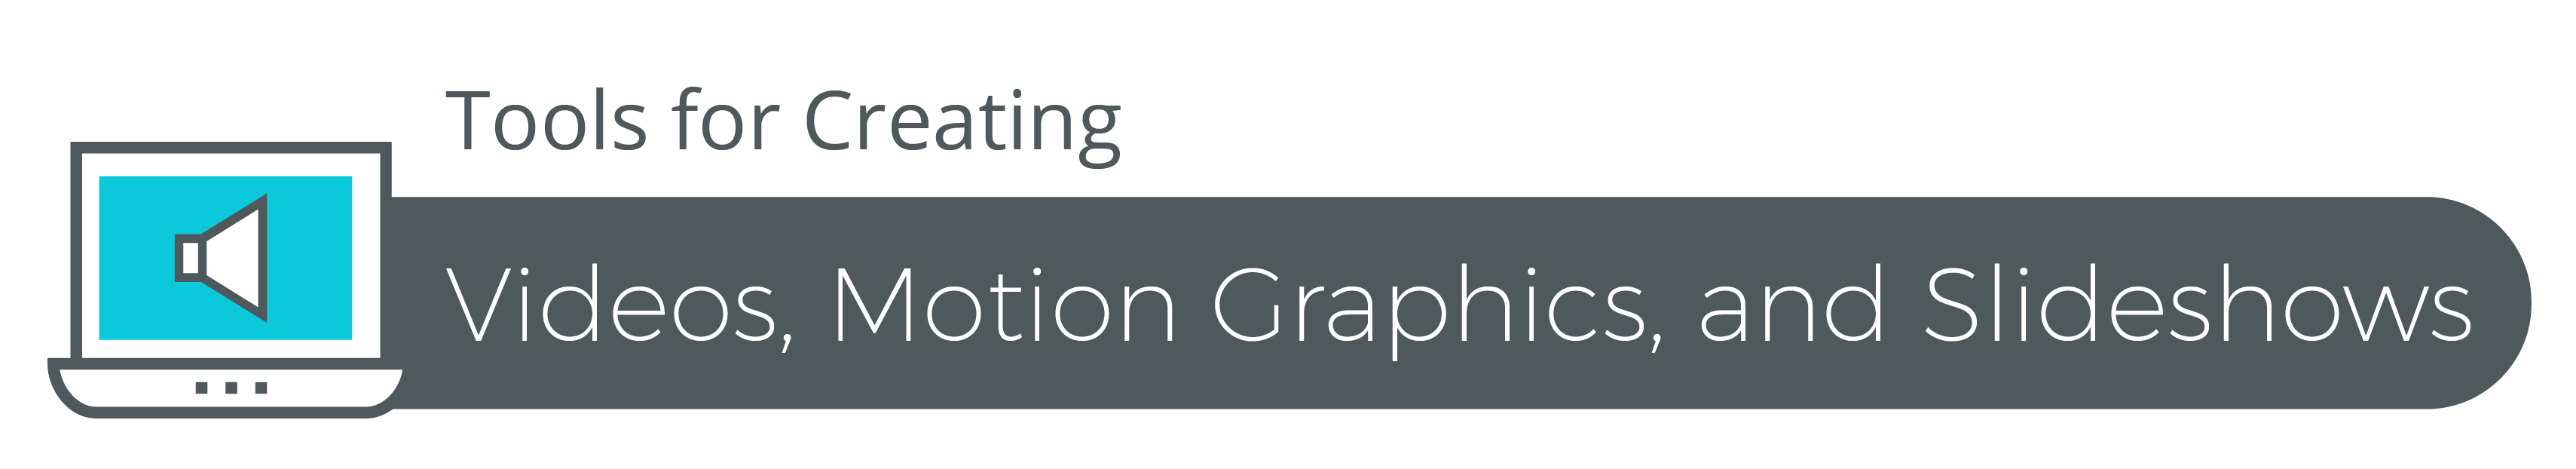 Best Content Creation Tools for Videos, Motion Graphics, and Slideshows